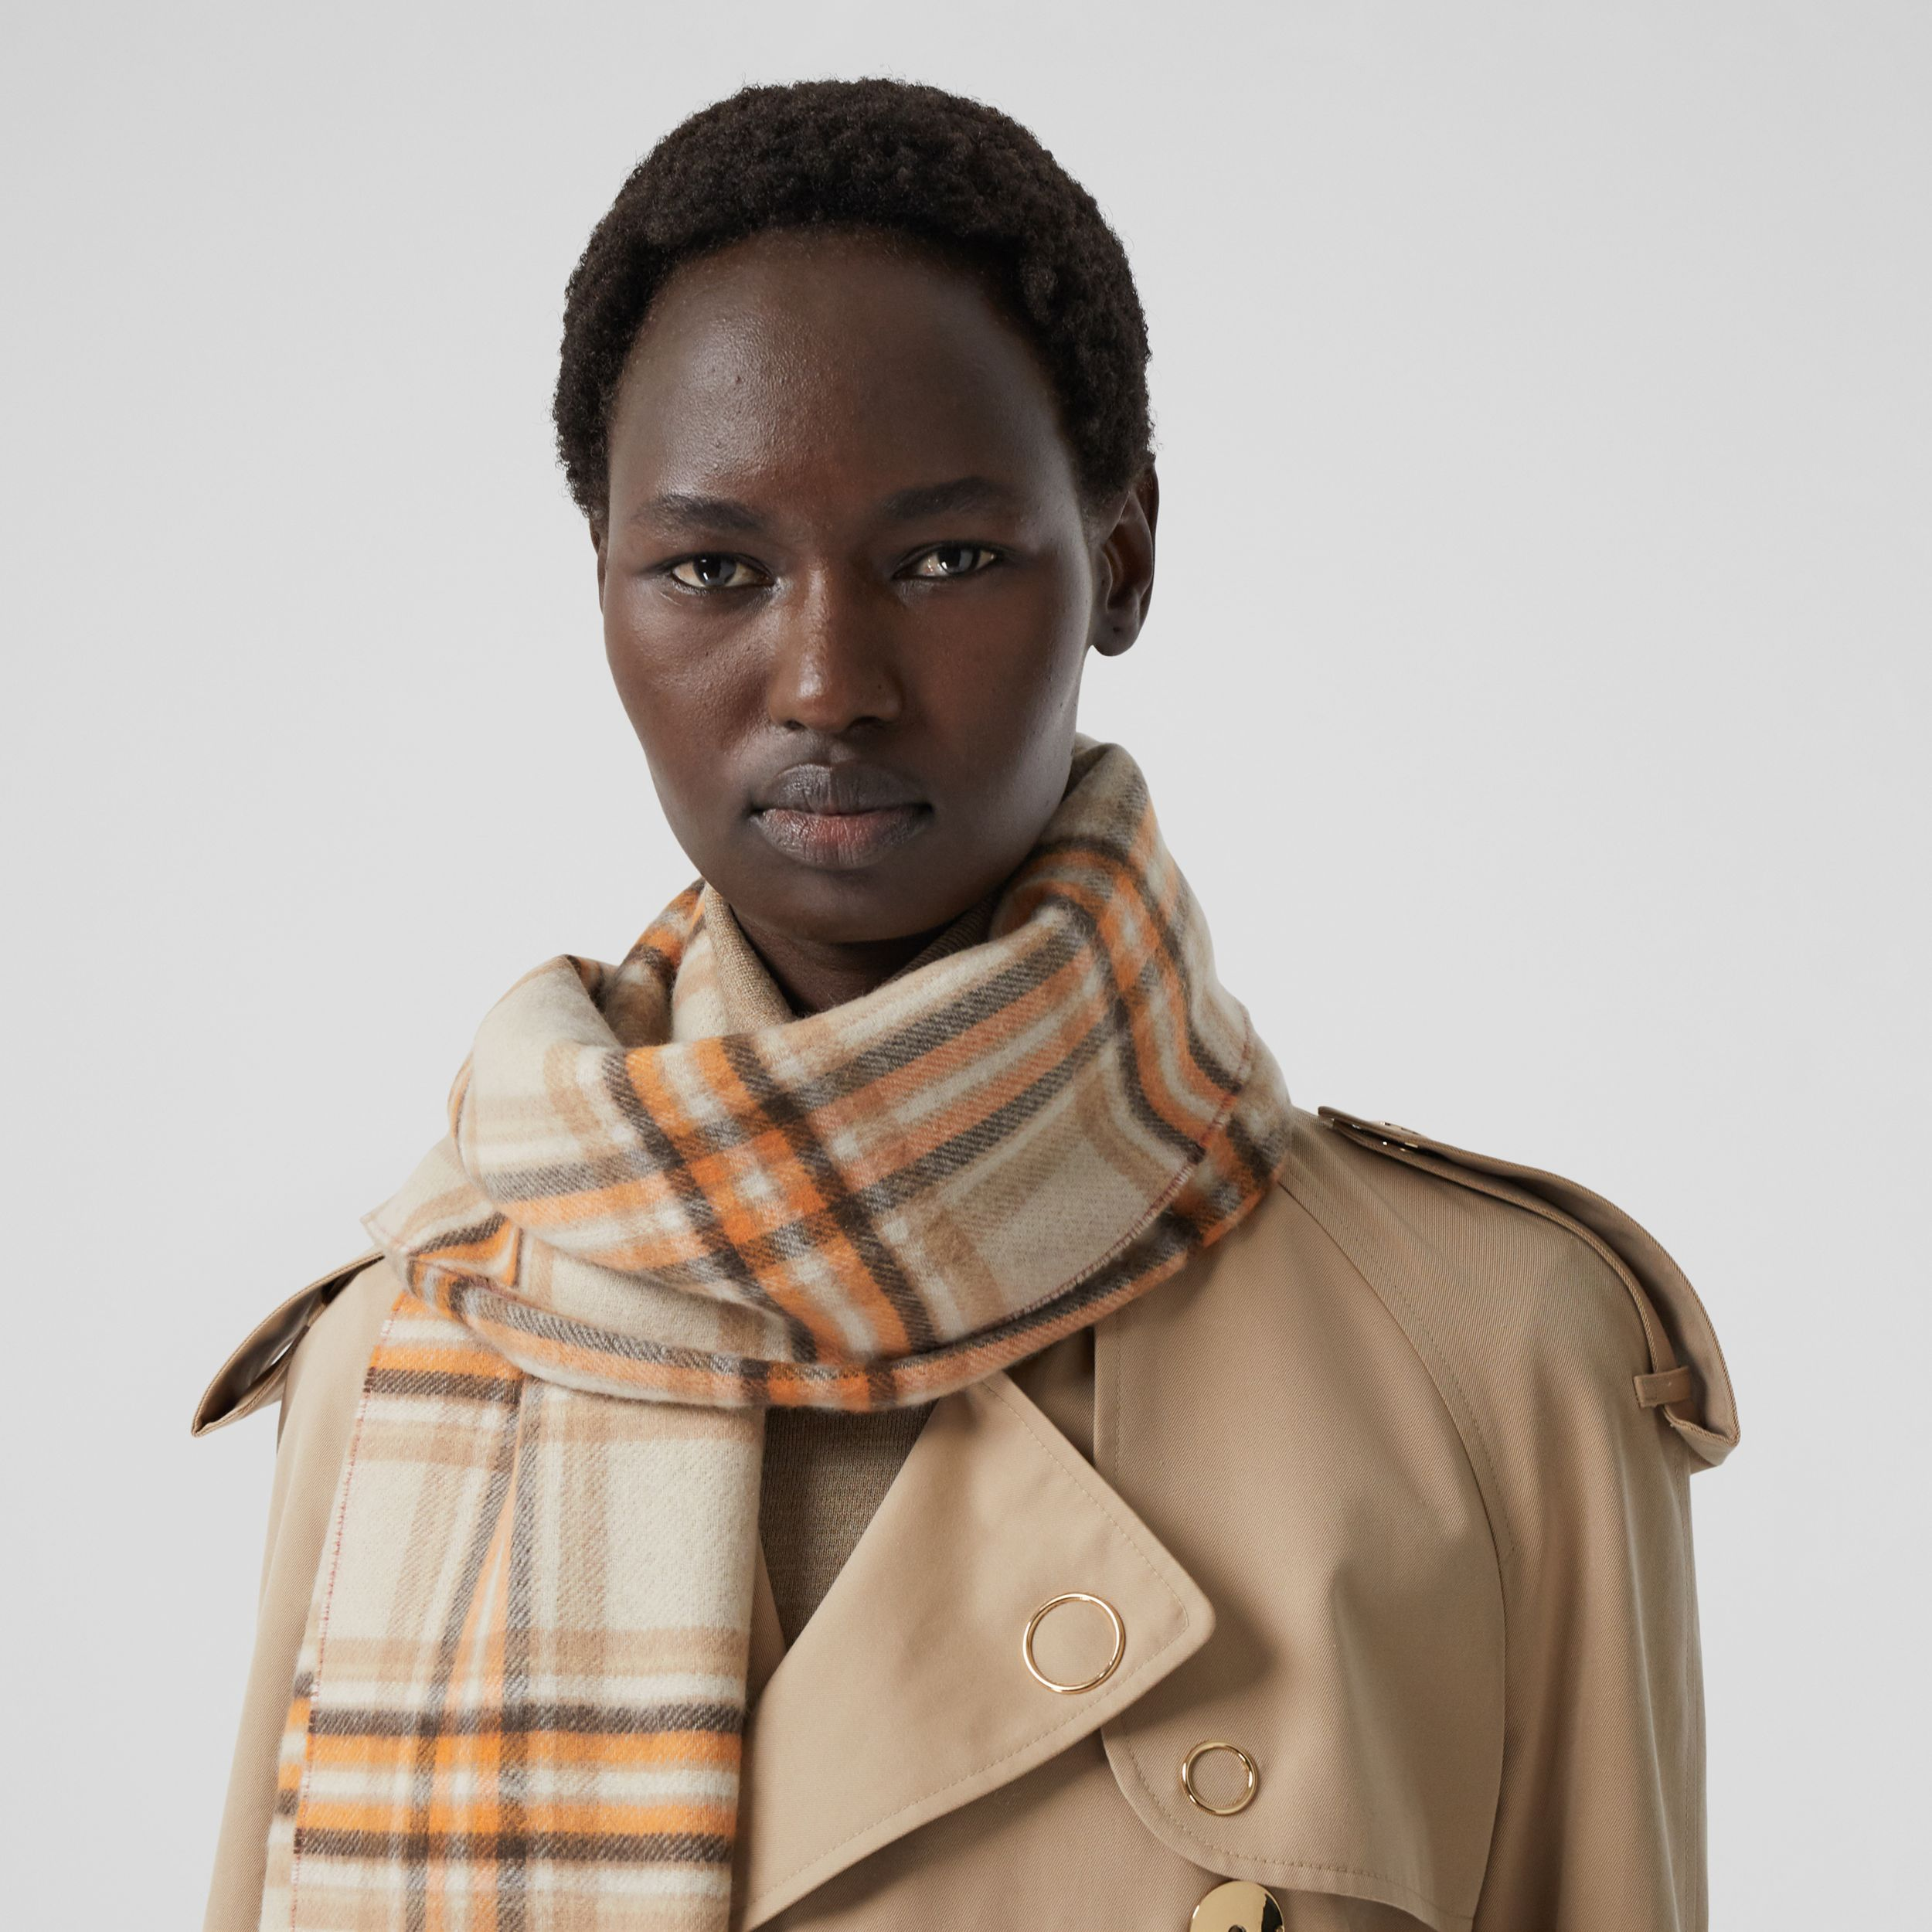 Reversible Check and Icon Stripe Cashmere Scarf in Beige | Burberry United Kingdom - 3